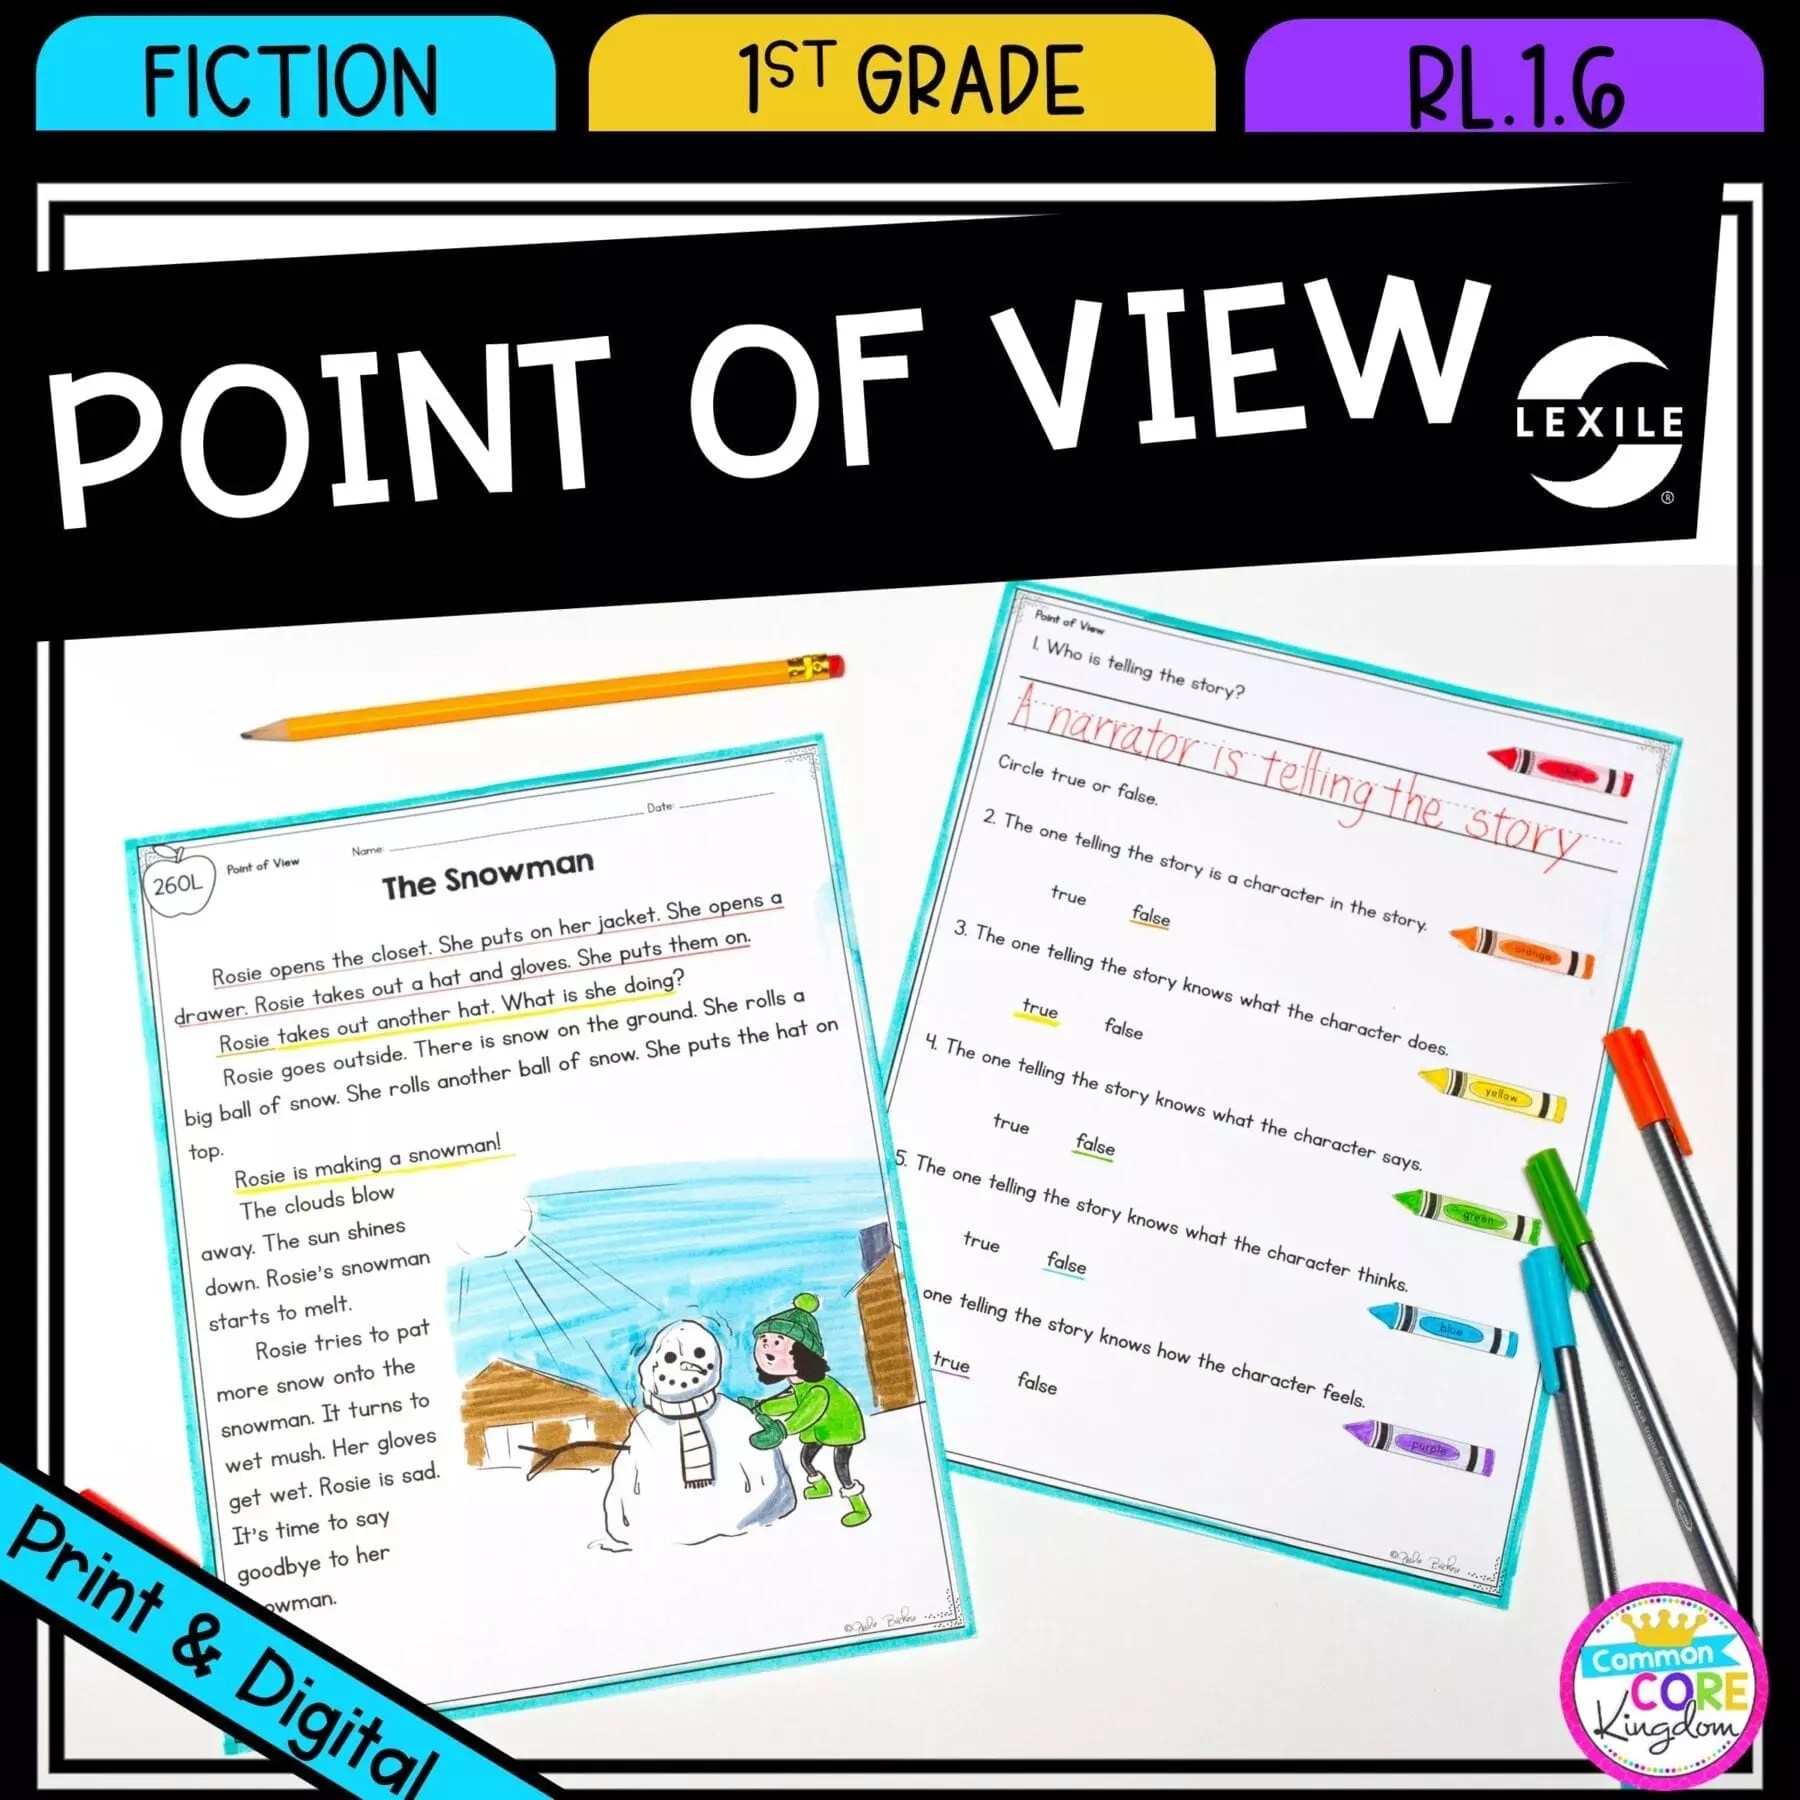 medium resolution of Point of View 1st Grade   RL.1.6 Google Slides Distance Learning Pack